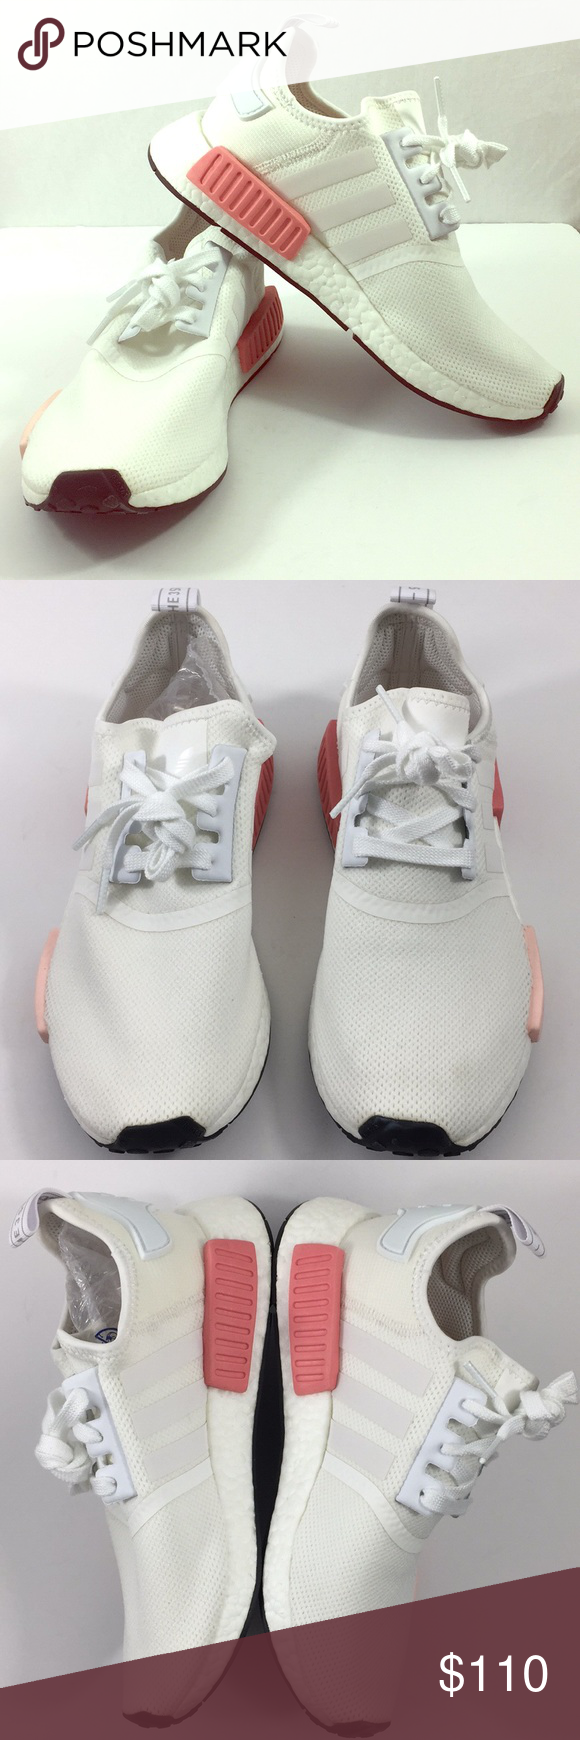 5e8c0c88a Adidas NMD R1 White Rose BY9952 Vapour Pink Adidas NMD R1 Women 7.5 White  Rose BY9952